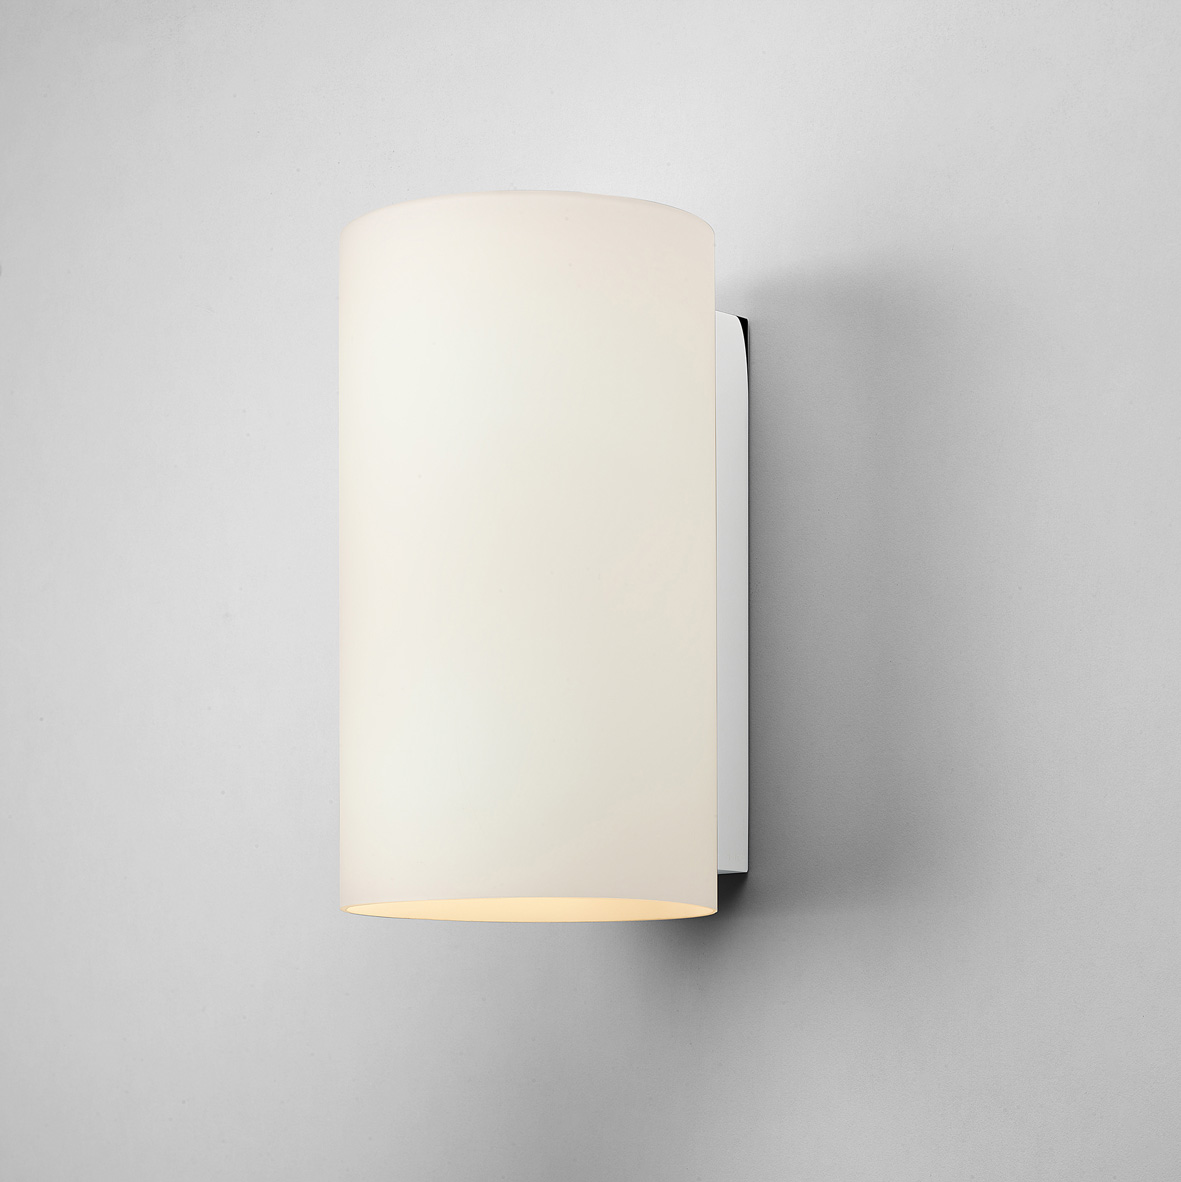 Astro Cyl 260 0884 dimmable cylindrical wall light 2x60W E27 lamp IP20 chrome Liminaires